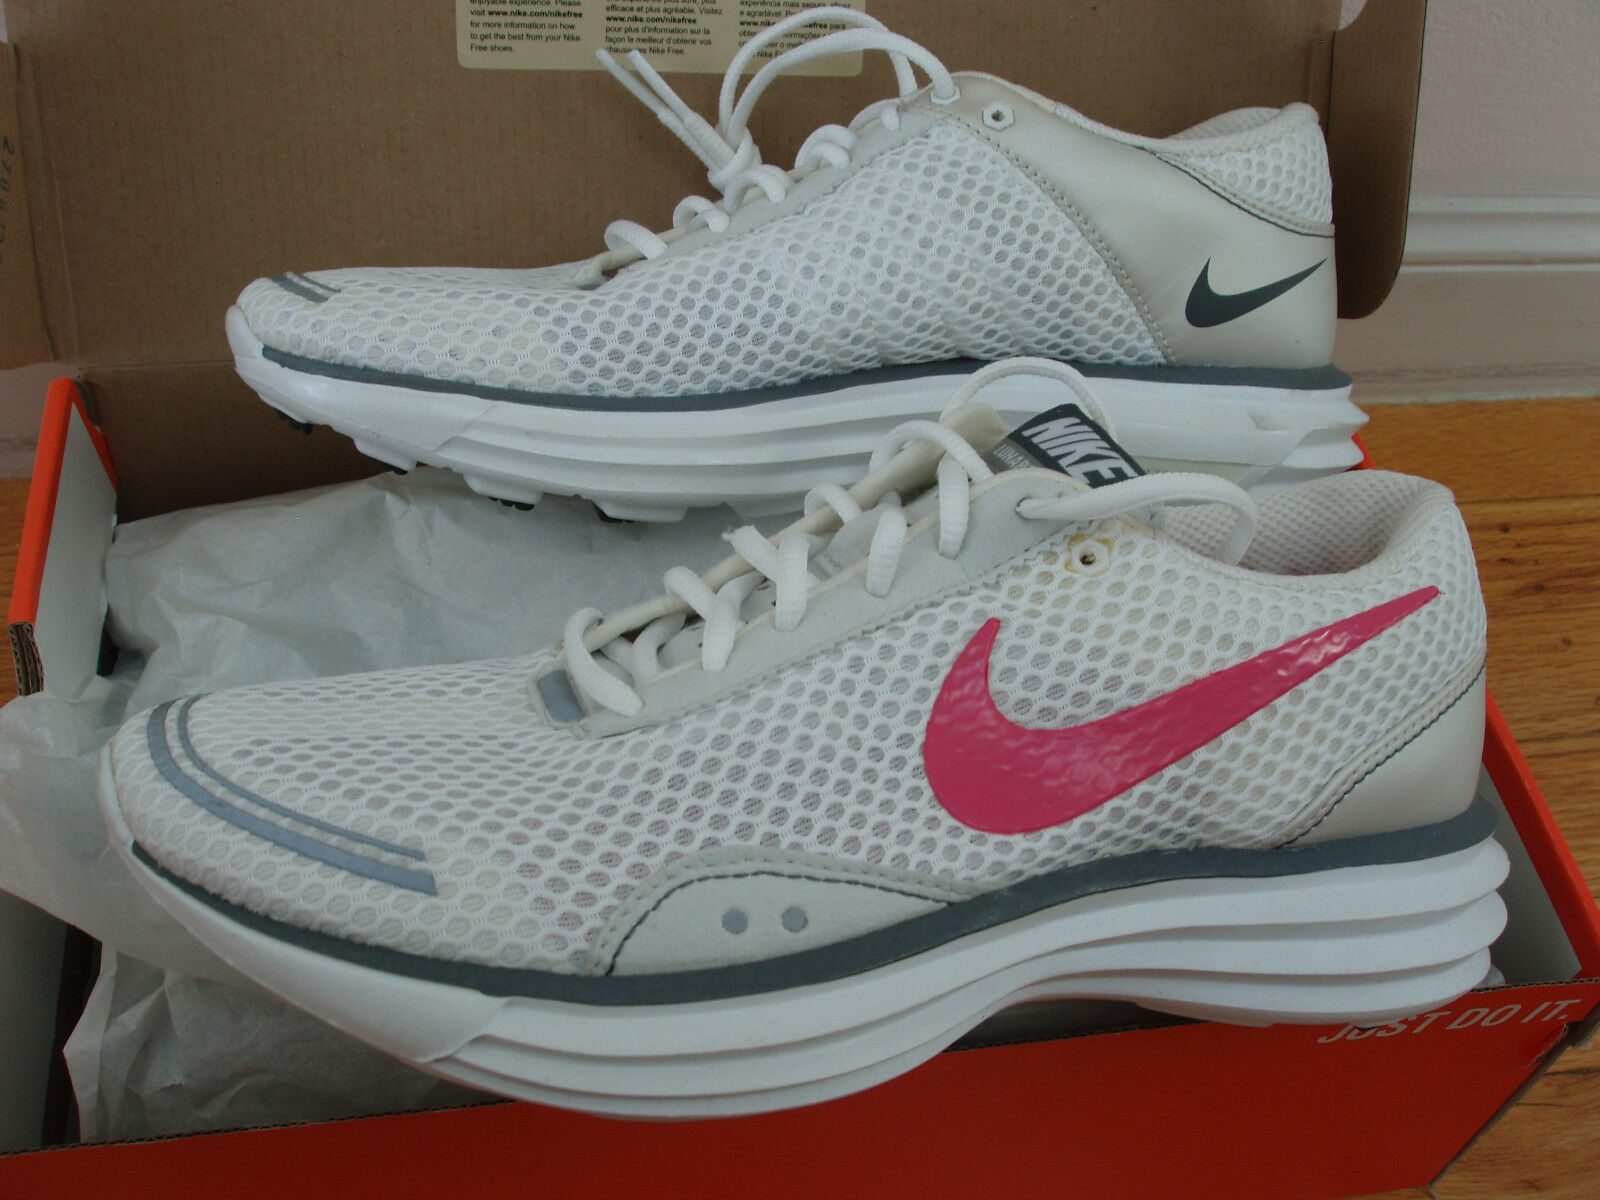 NEW in box Nike LunarTrainer womens 7.5 8 8 8 lunar trainer running shoes white pink 50554b